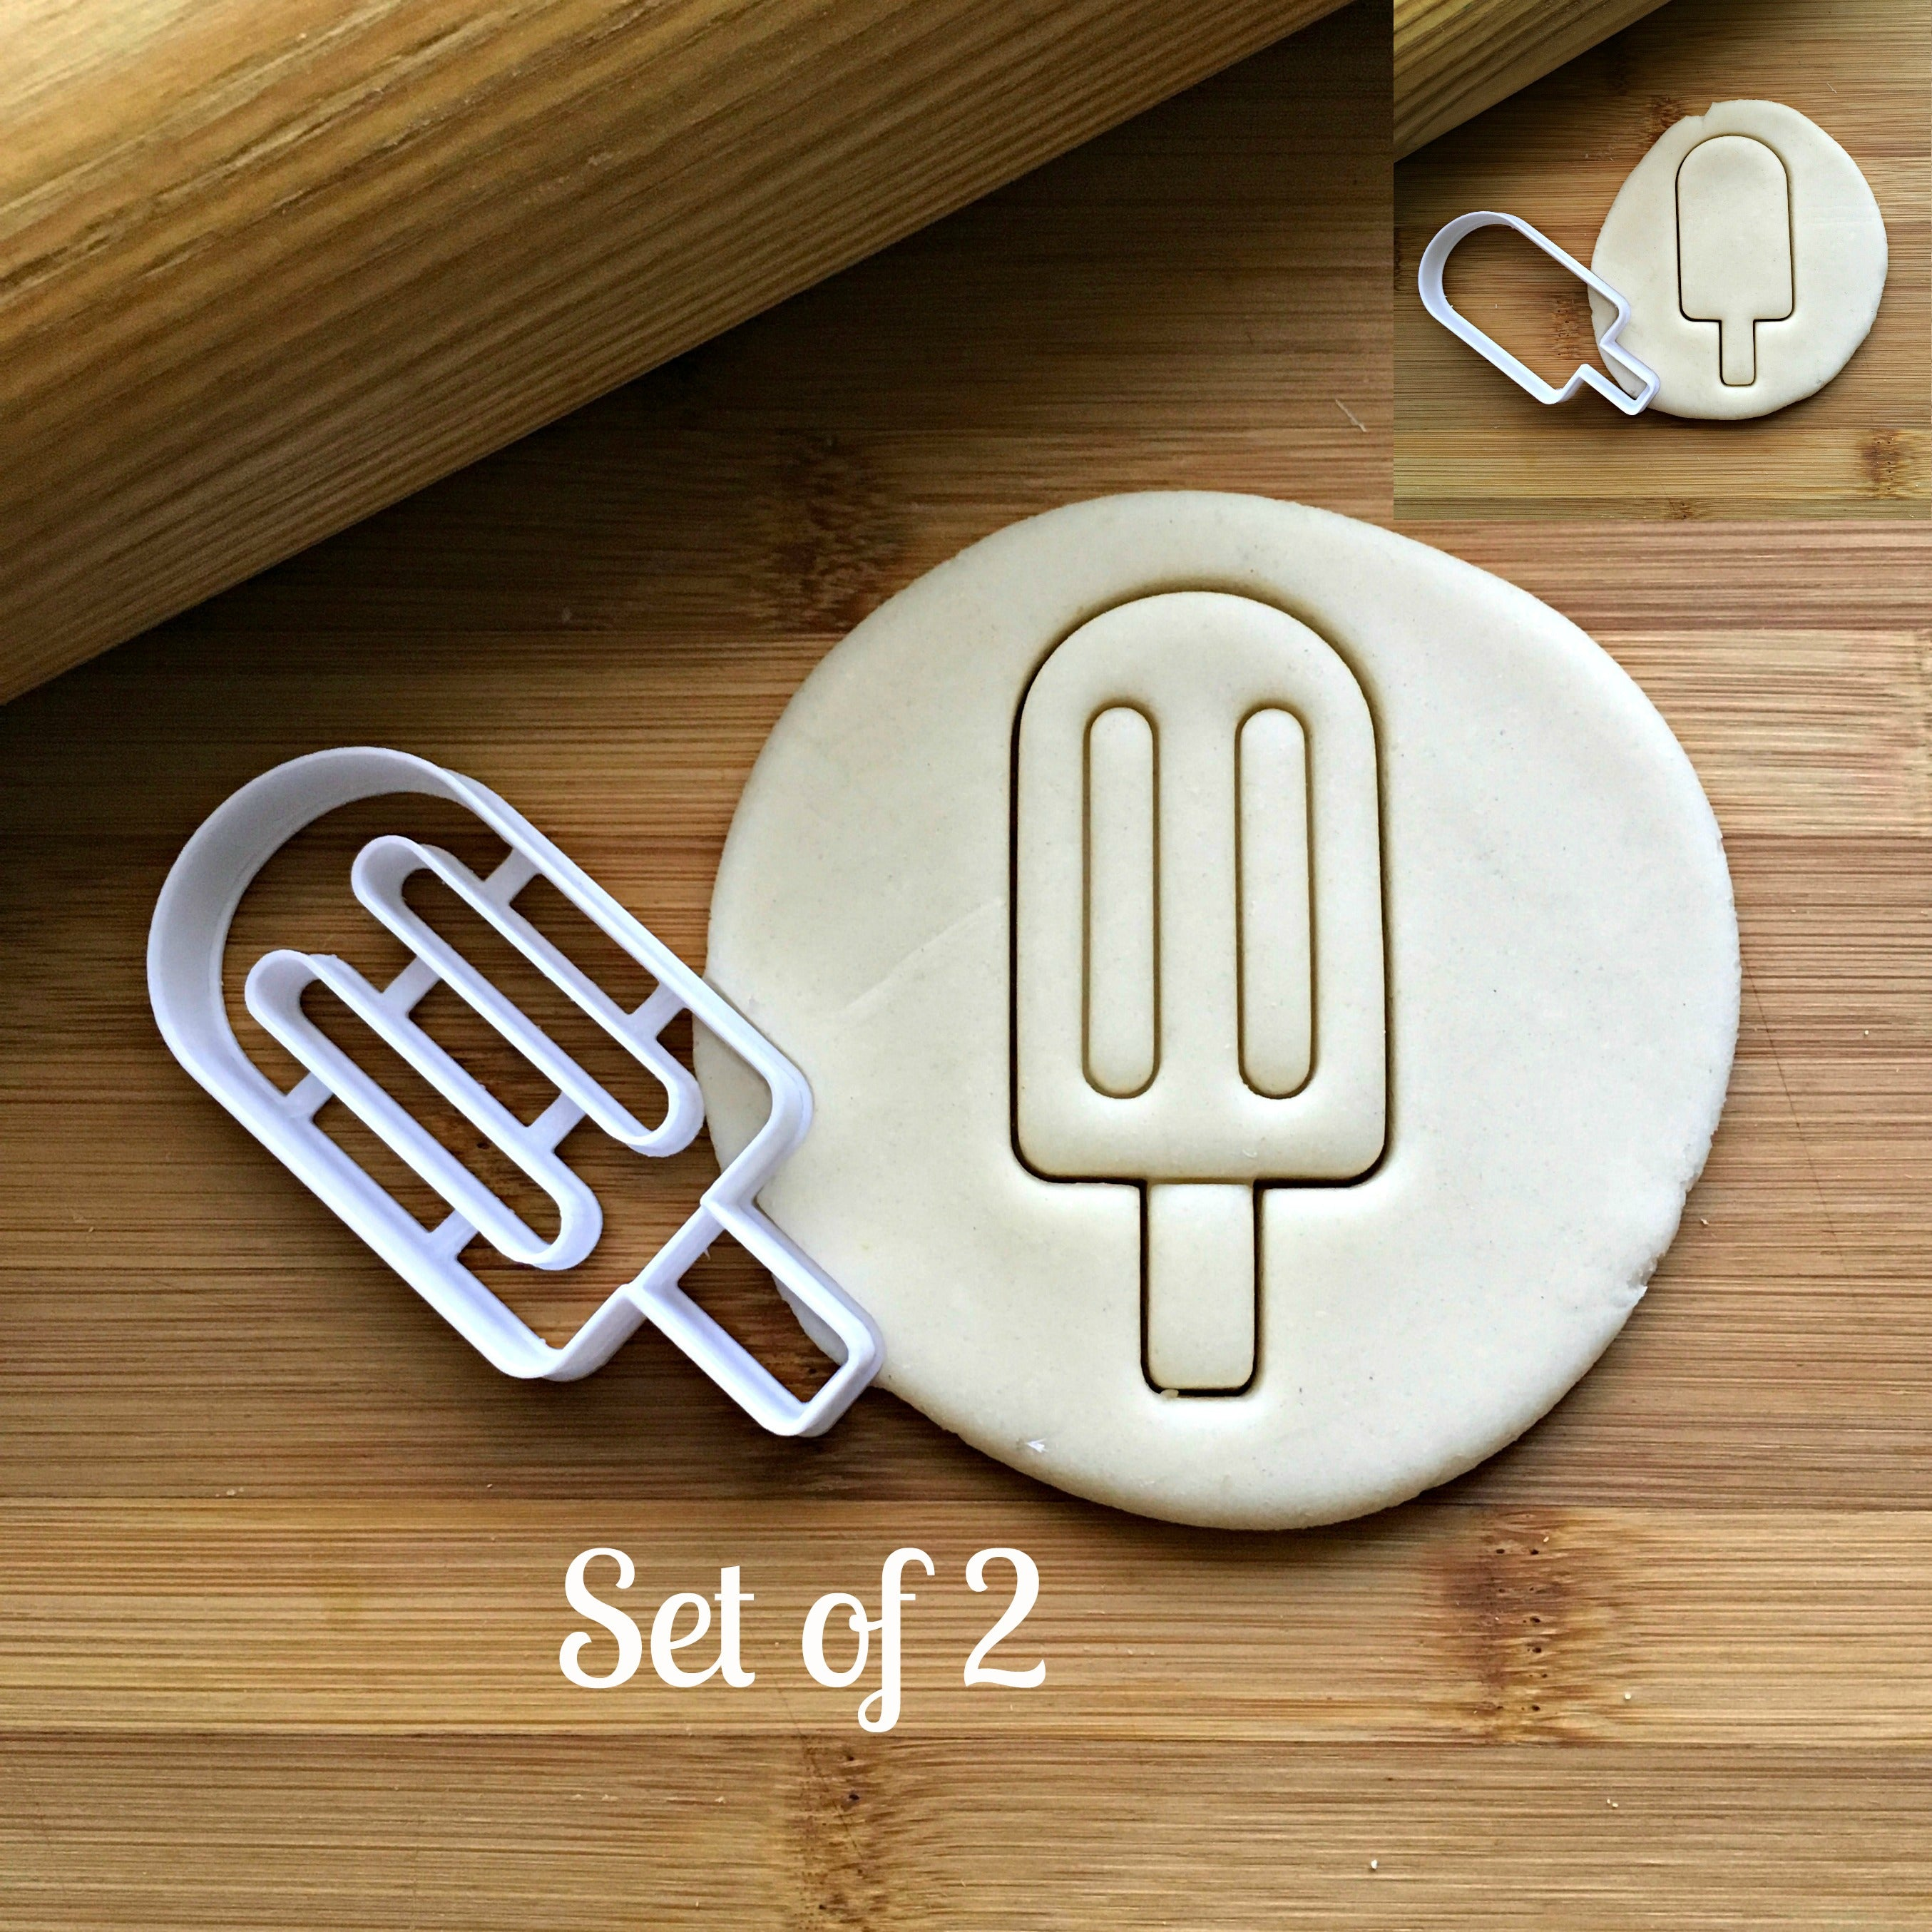 Set of 2 Popsicle Cookie Cutters